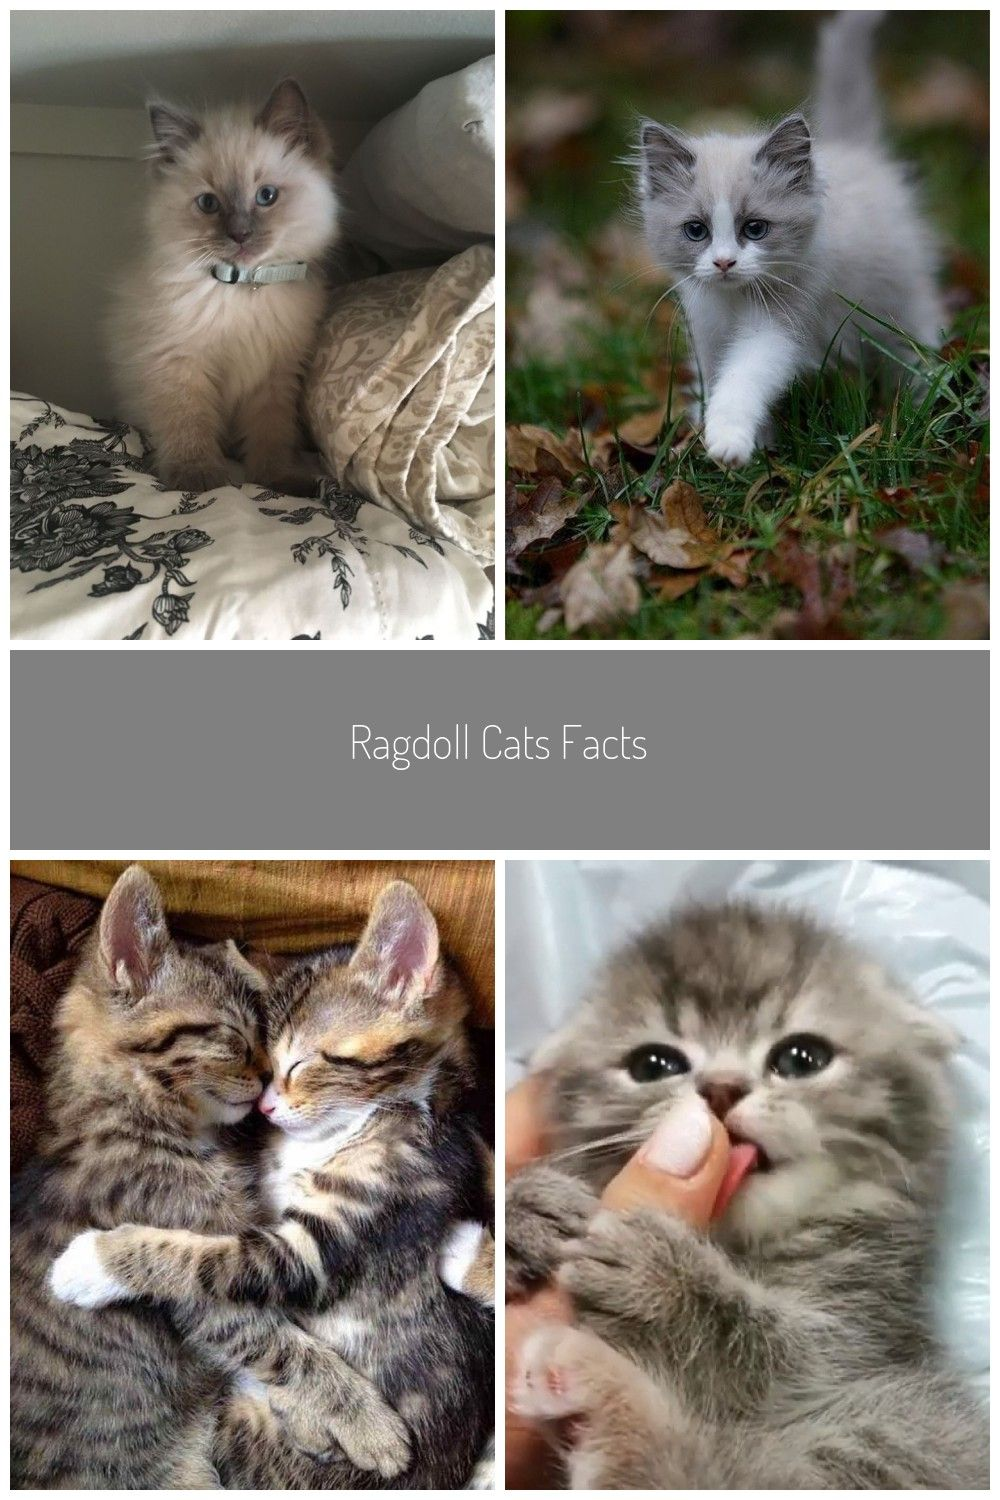 Top 72 Funny Cats And Kittens Pictures Baby Cats Cute Cats Kitten Pictures